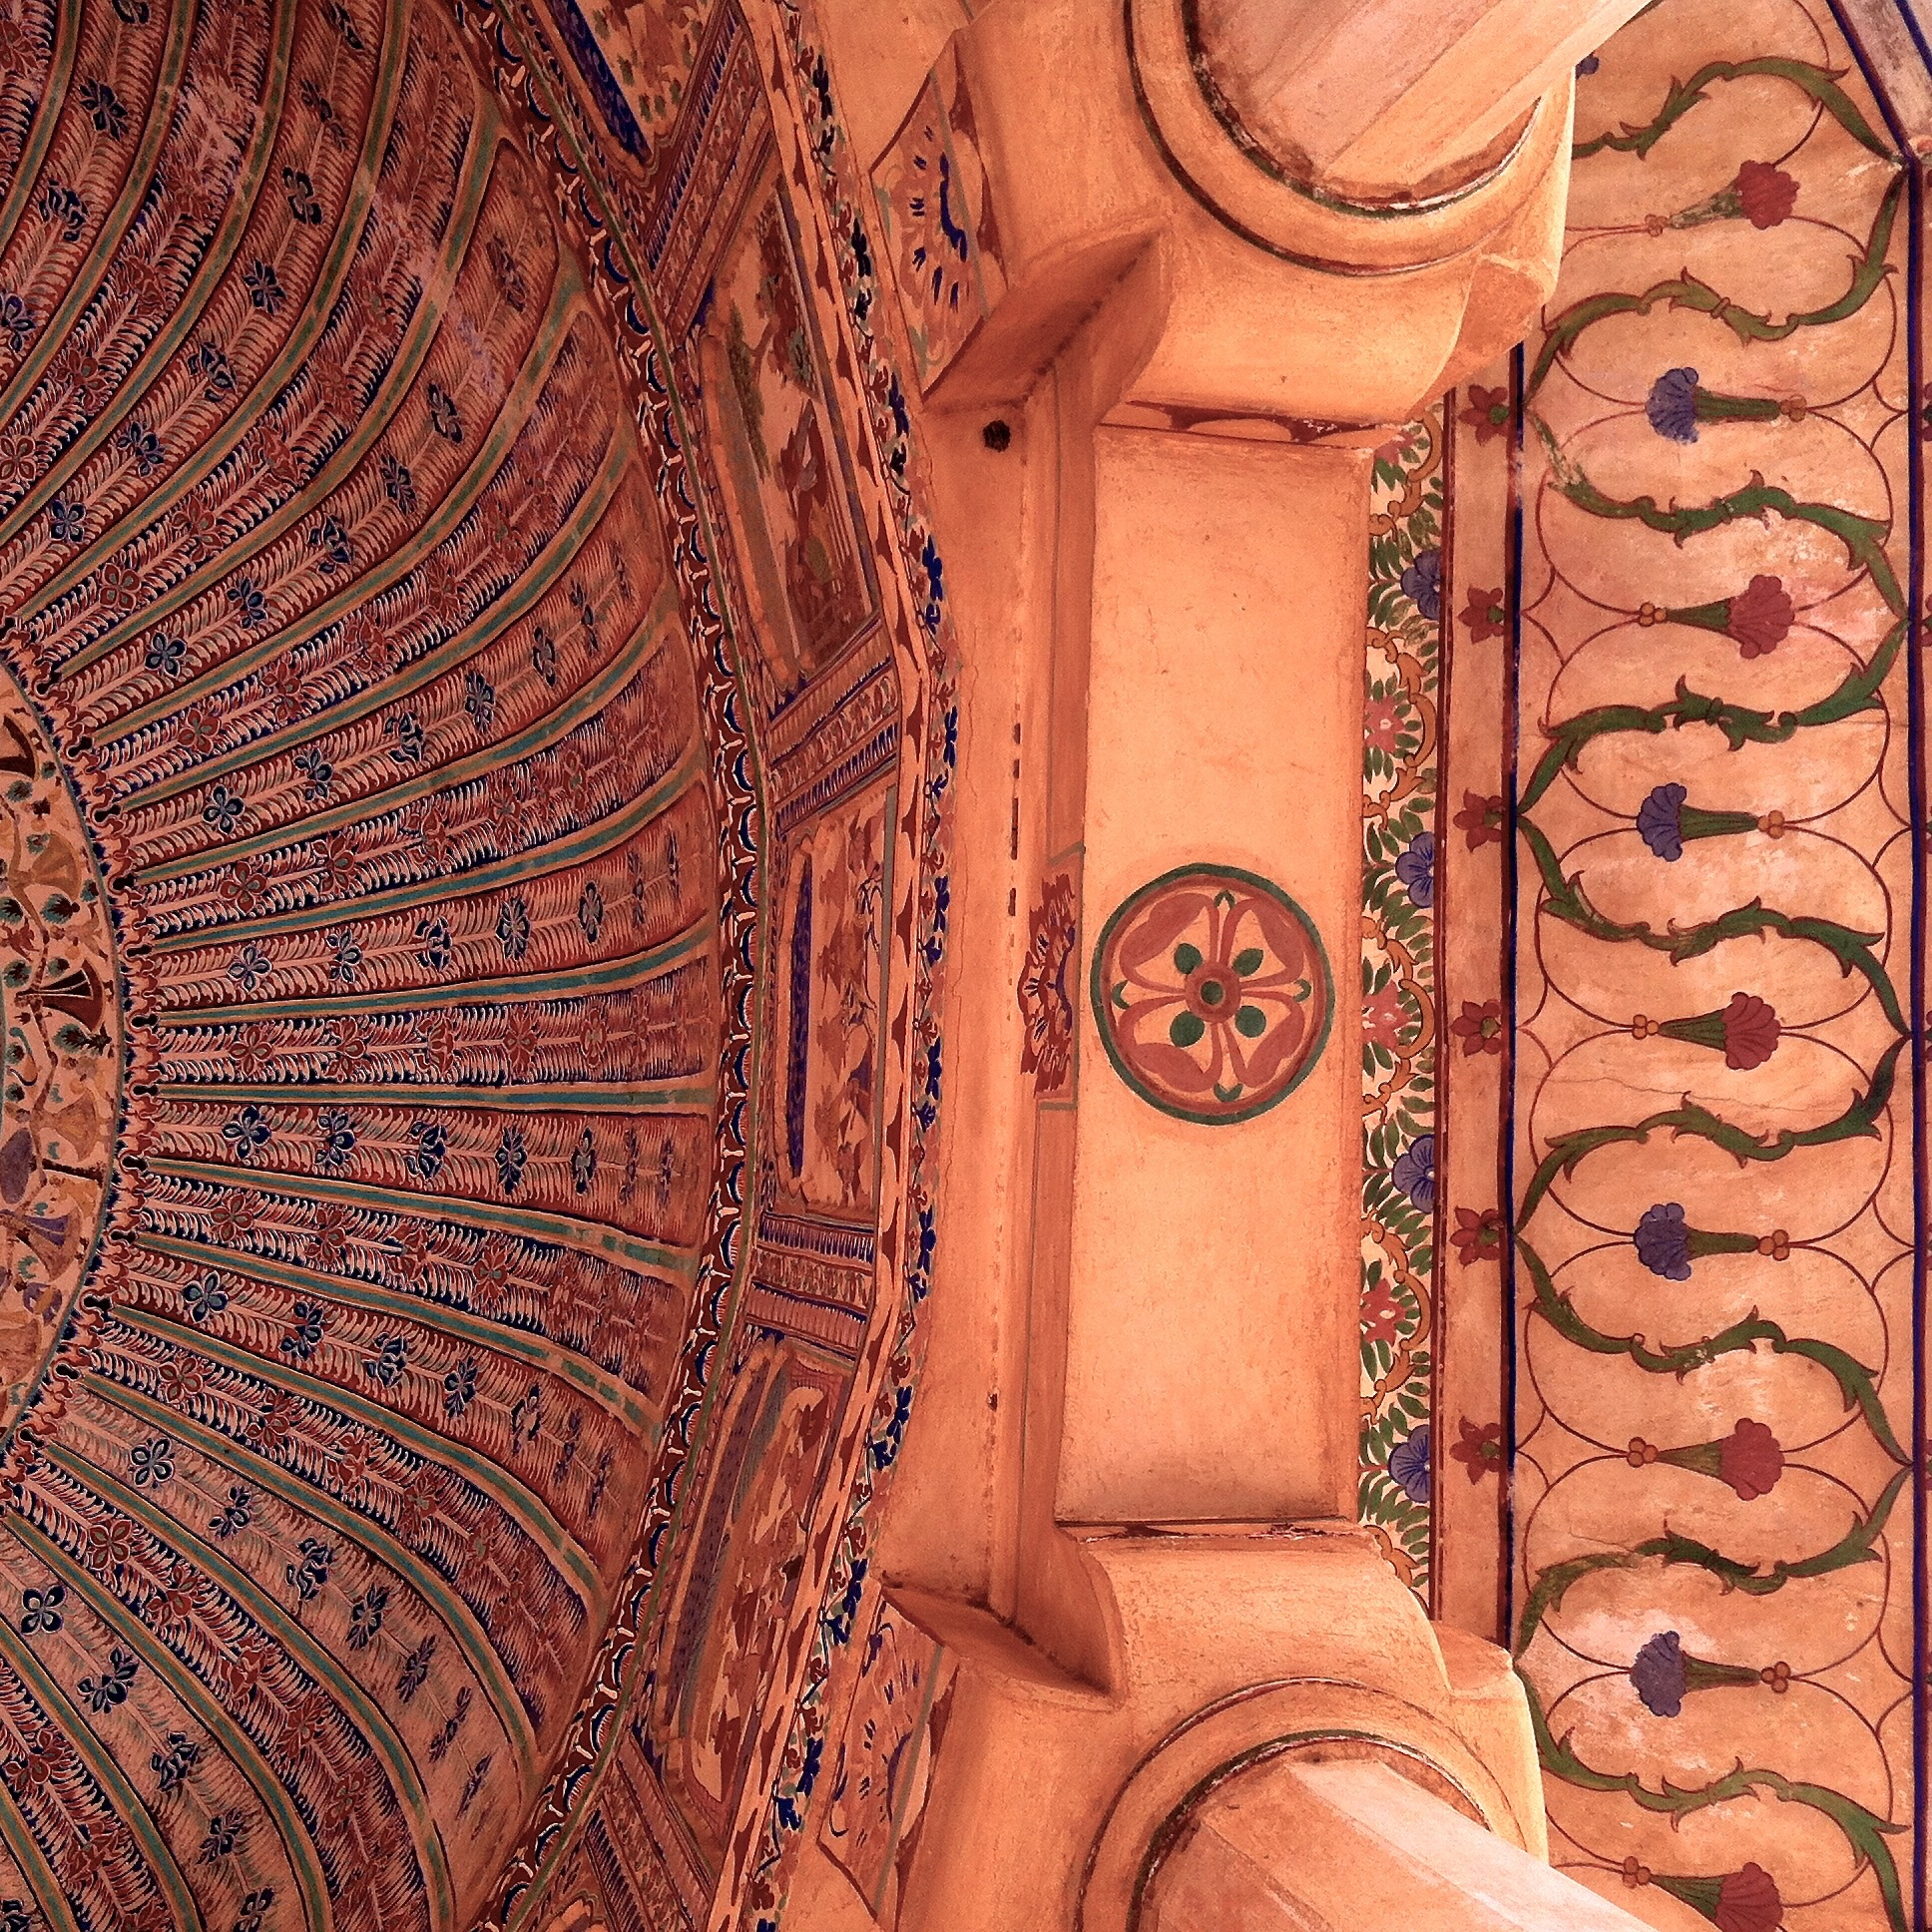 Even the ceiling is beautifully decorated